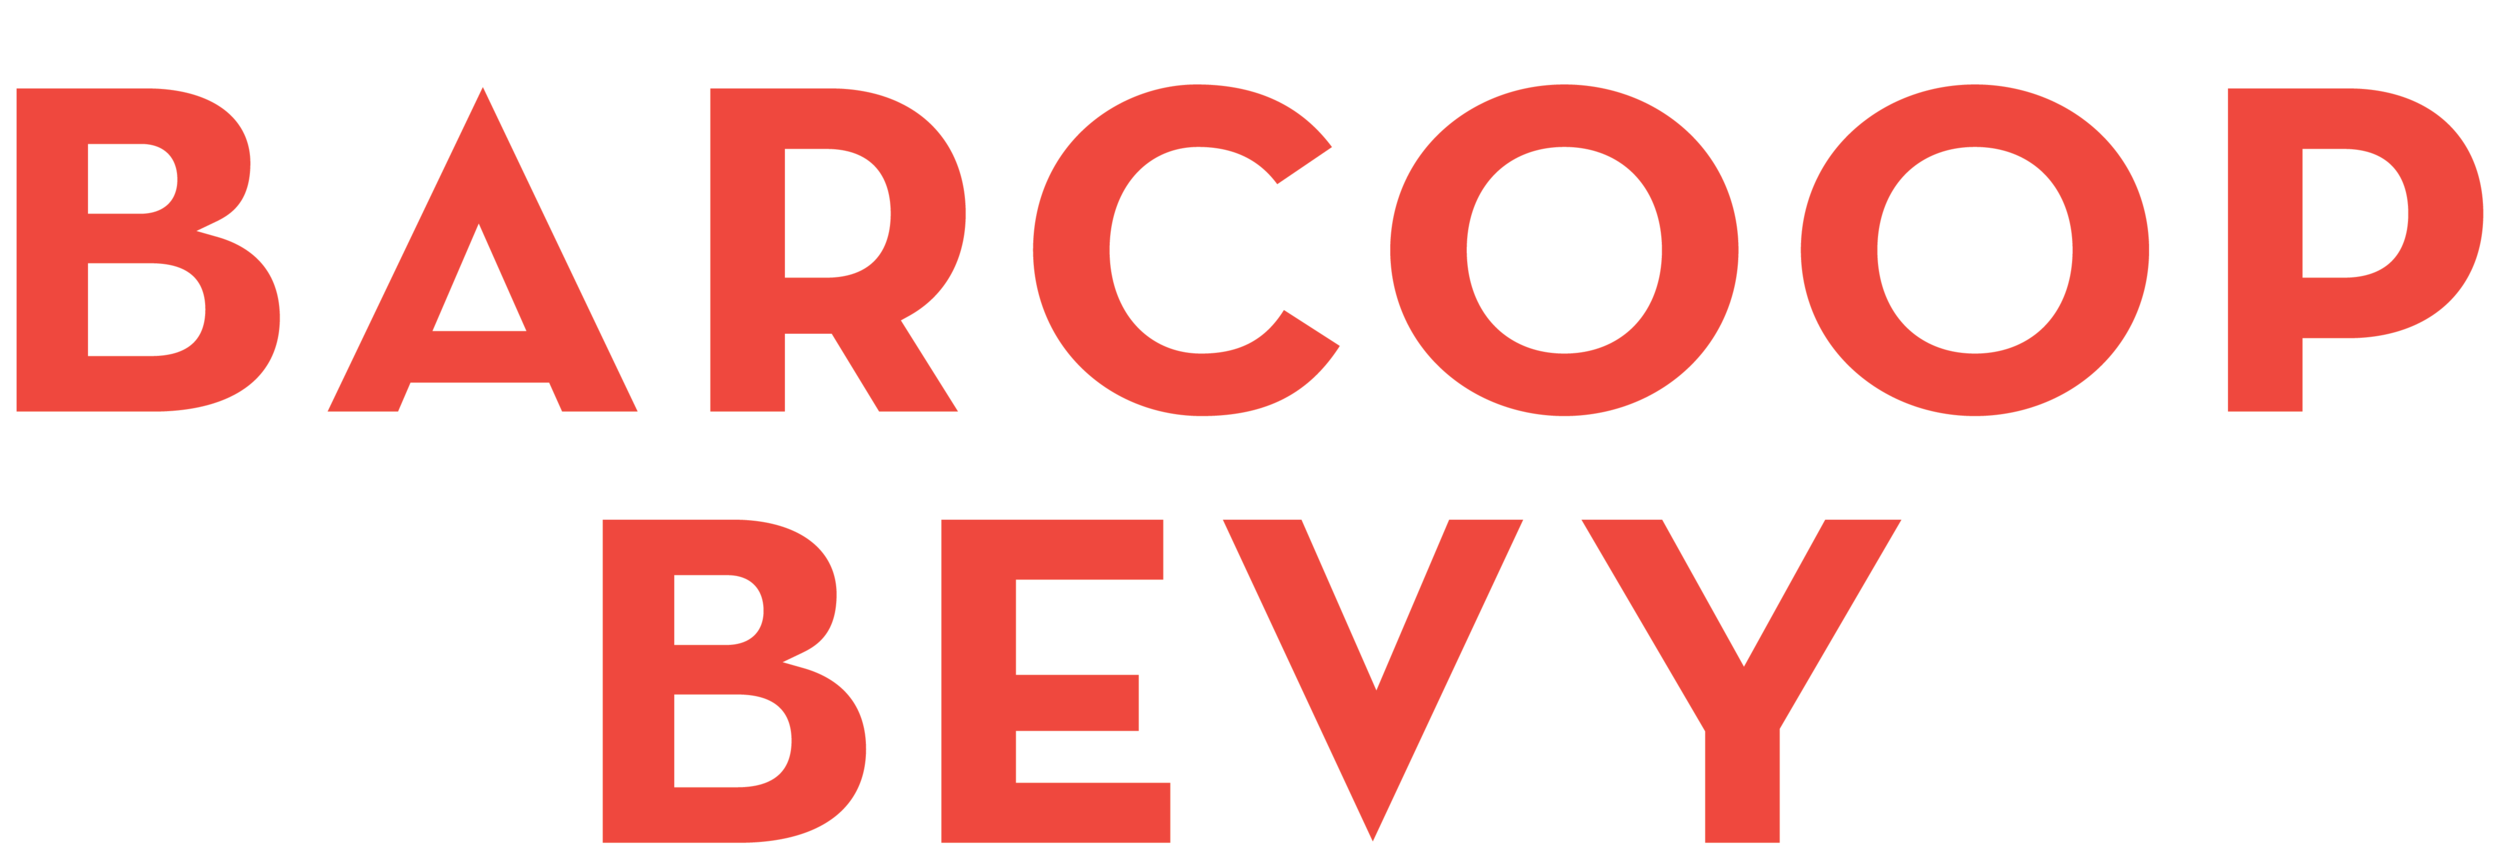 Barcoop-Bevy-header-09.png